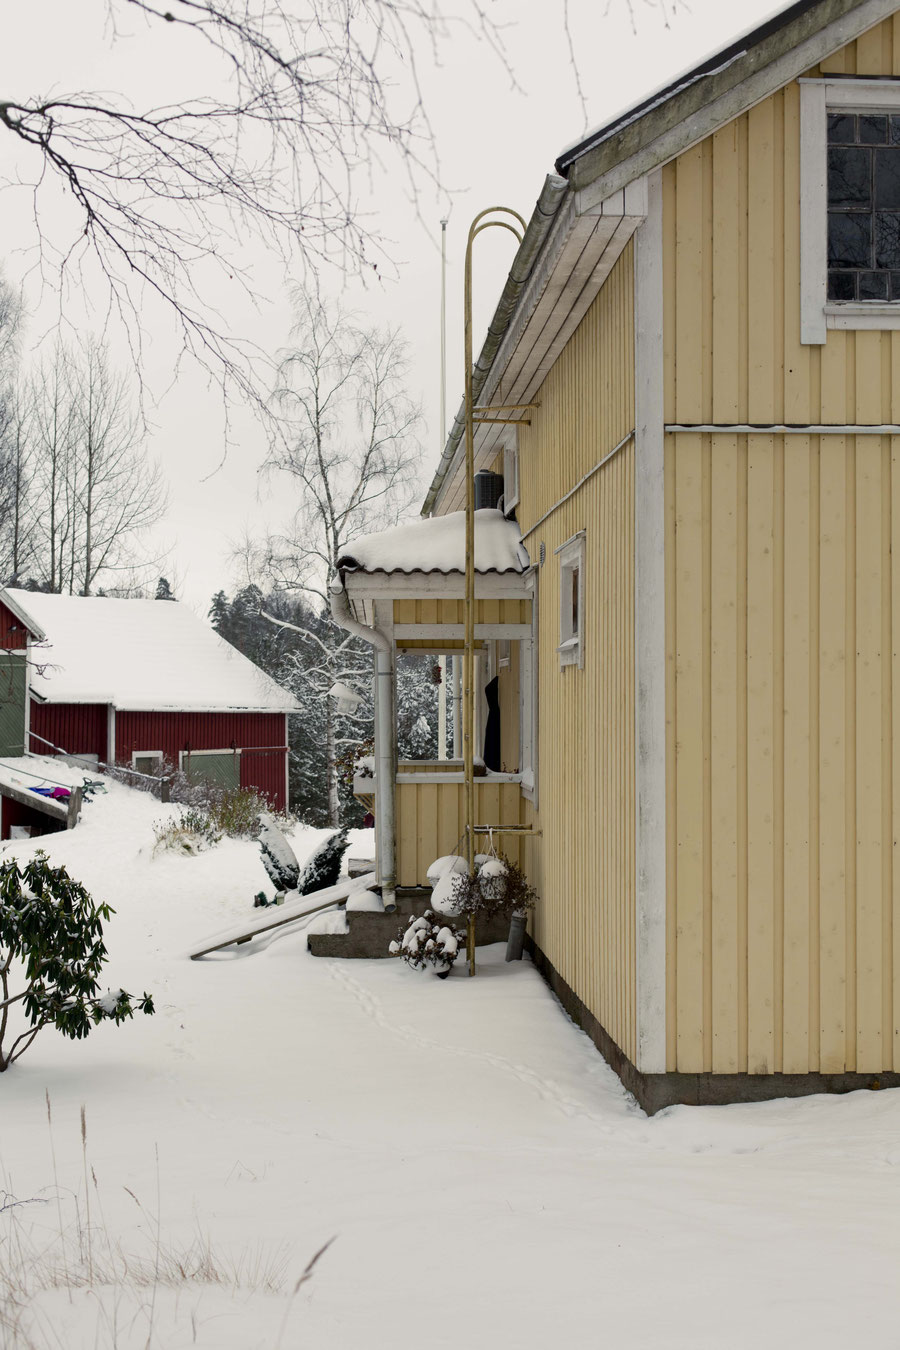 The finnish family home with stables, Vantaa, Finland